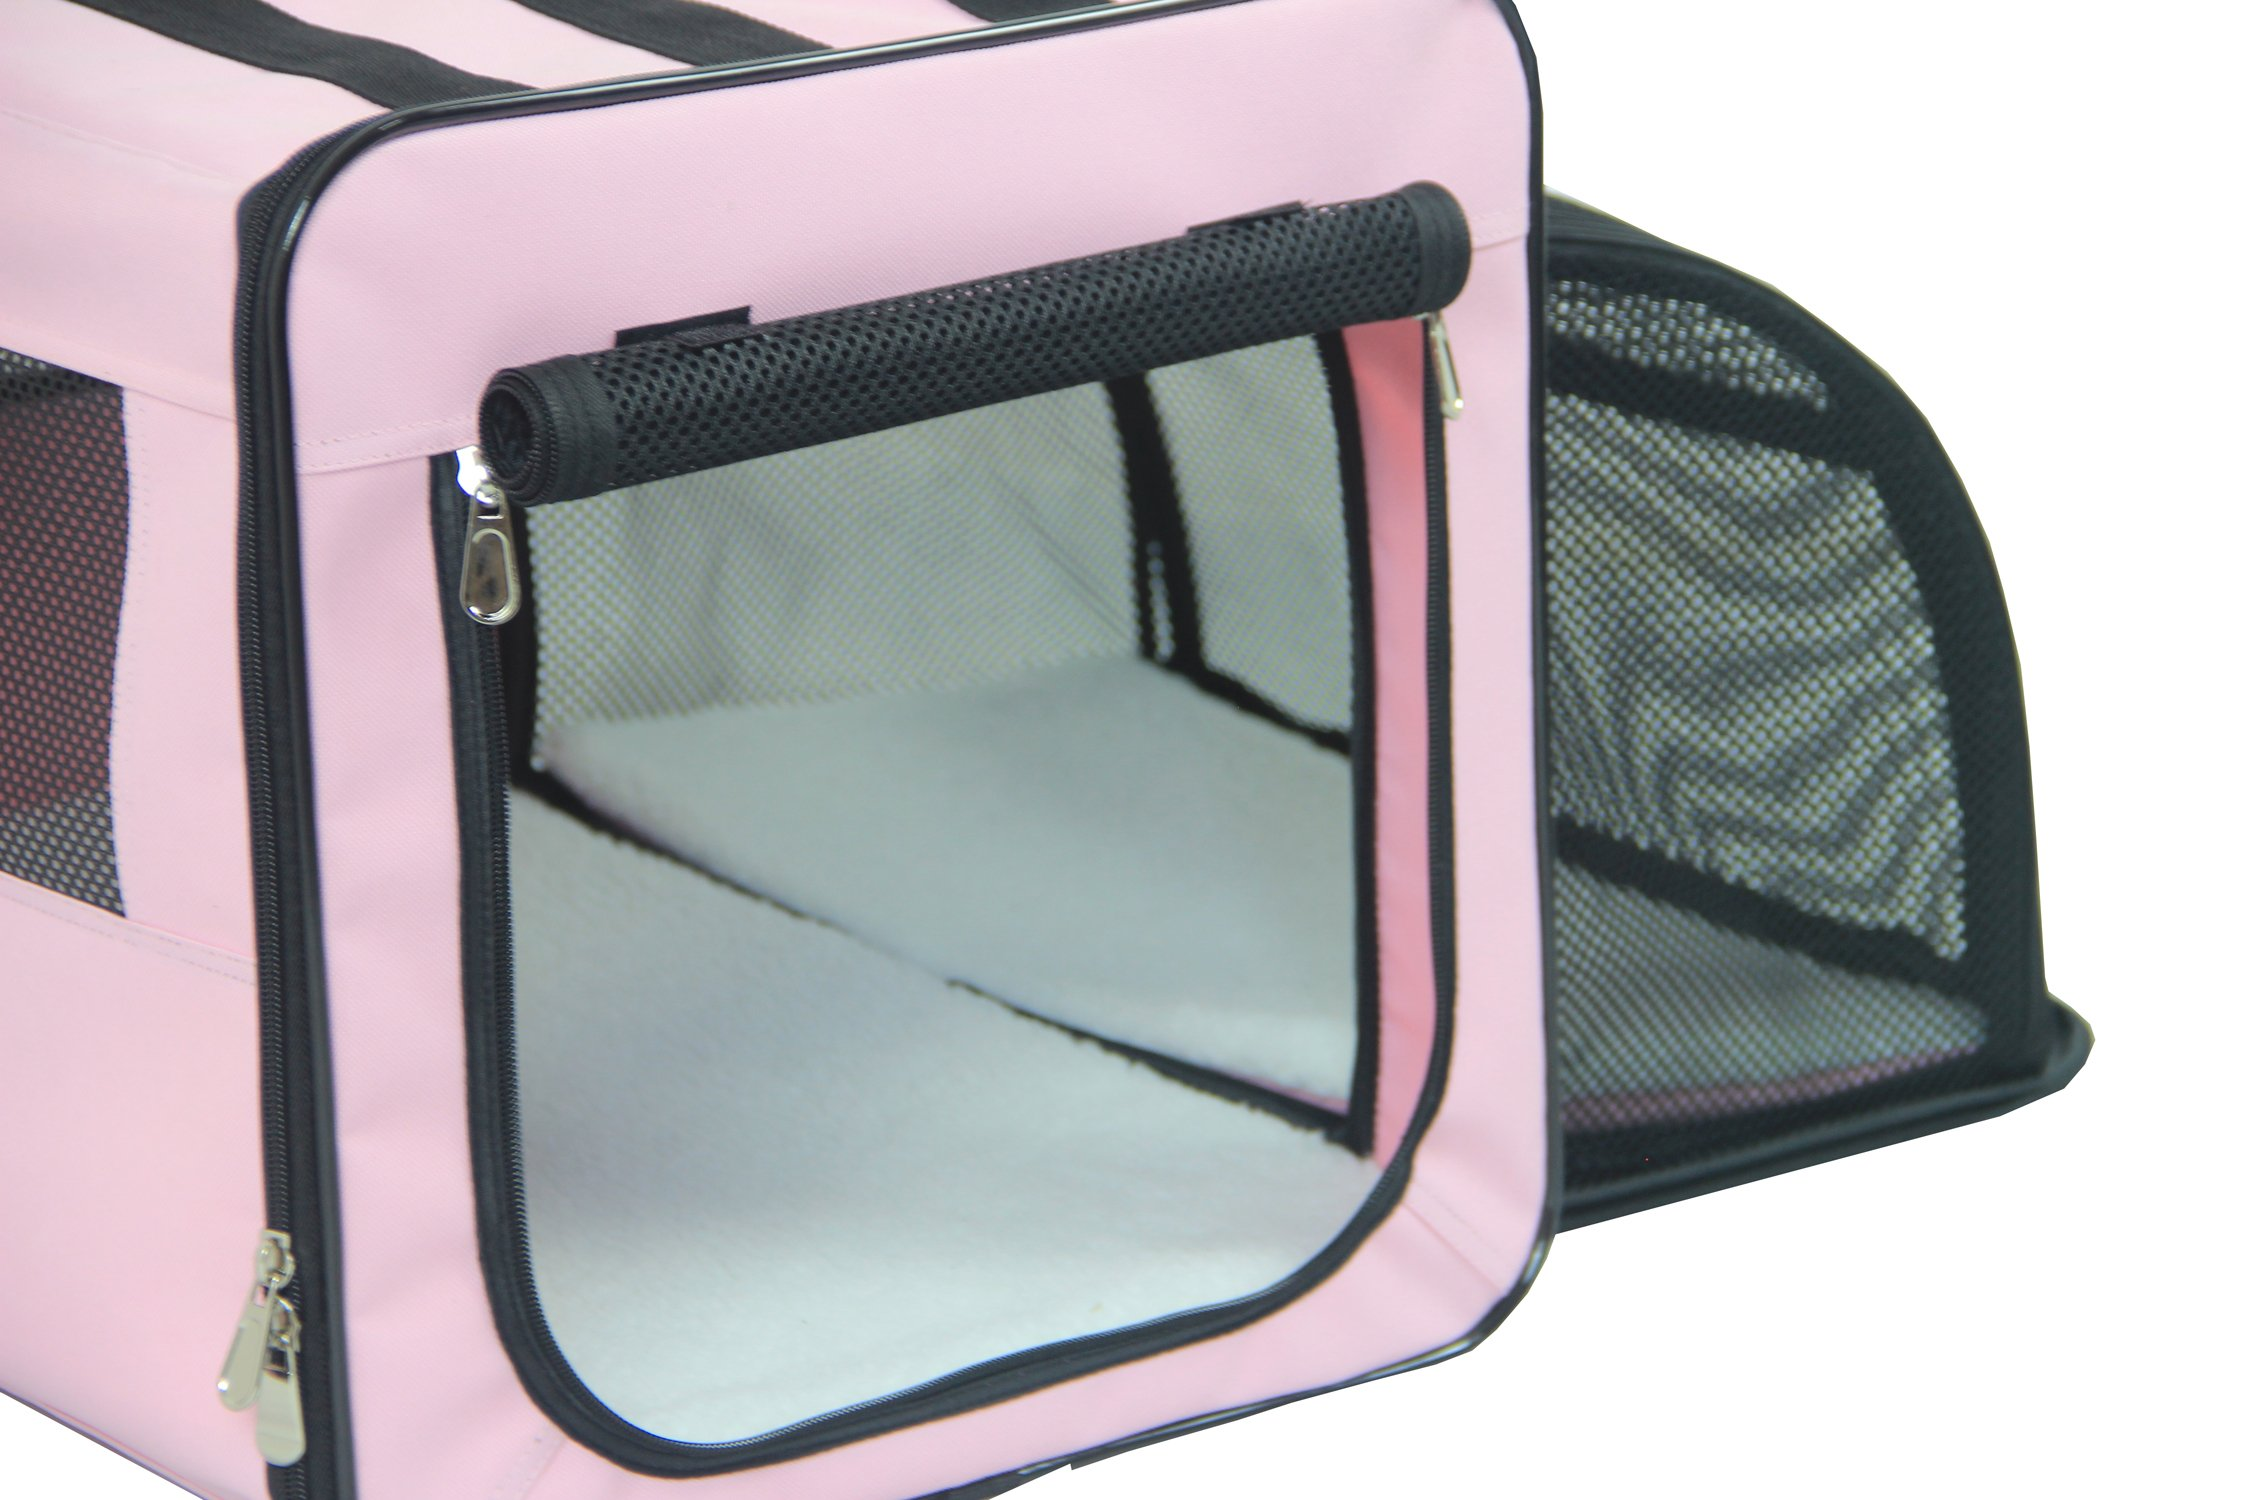 Pet Life 'Capacious' Dual-Sided Expandable Spacious Wire Folding Collapsible Lightweight Pet Dog Crate Carrier House, X-Large, Pink by Pet Life (Image #5)